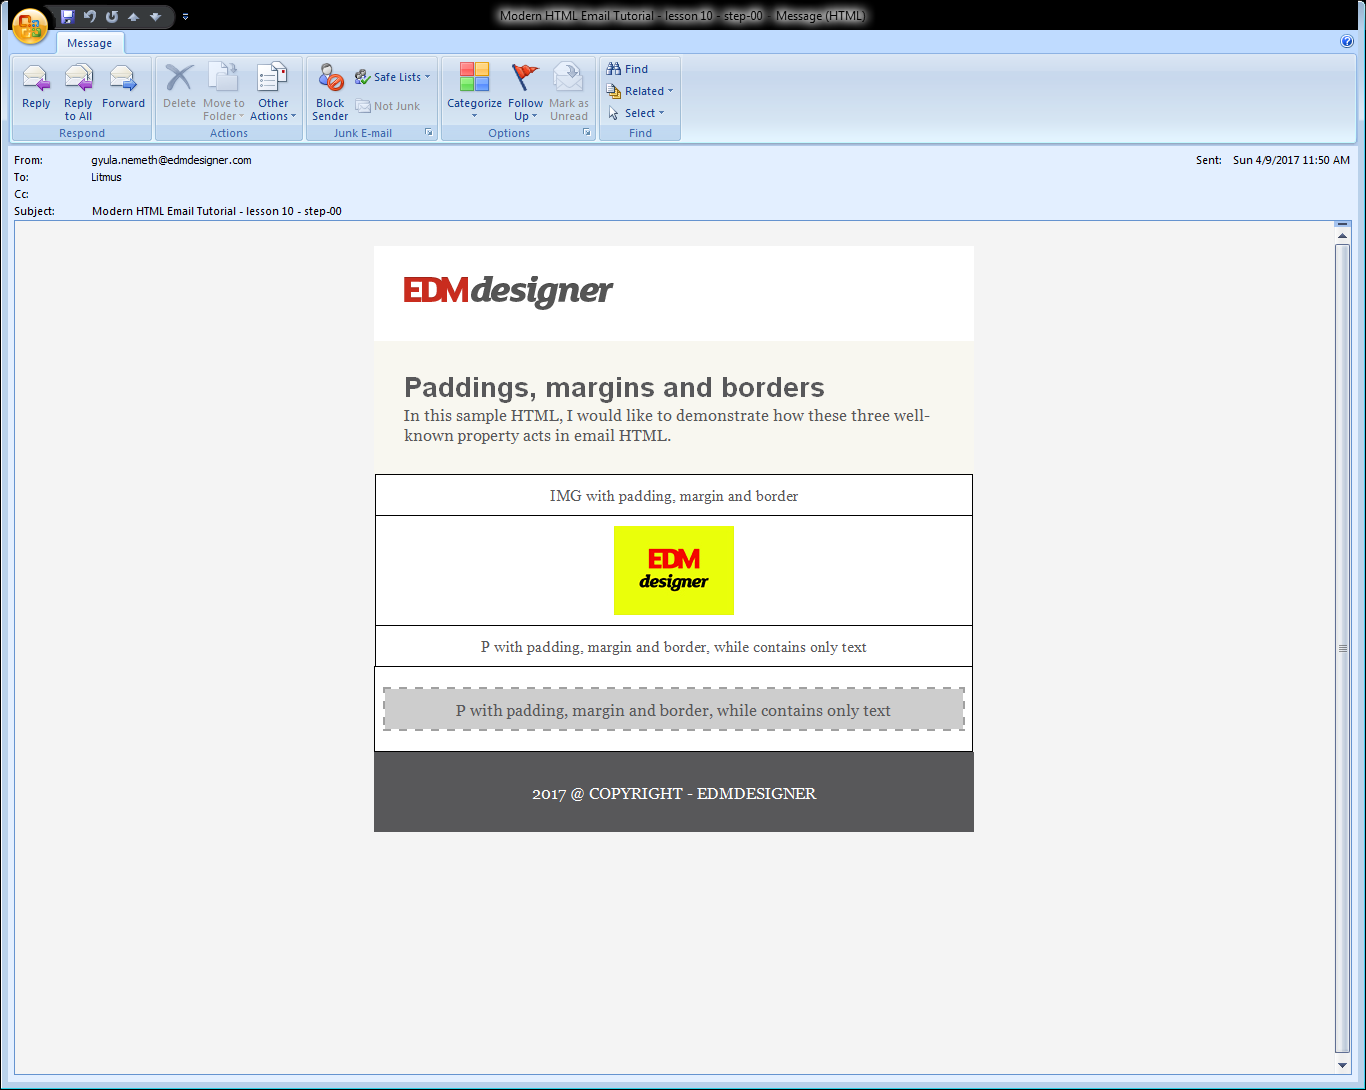 Paddings, Margins and Borders in Modern HTML Emails